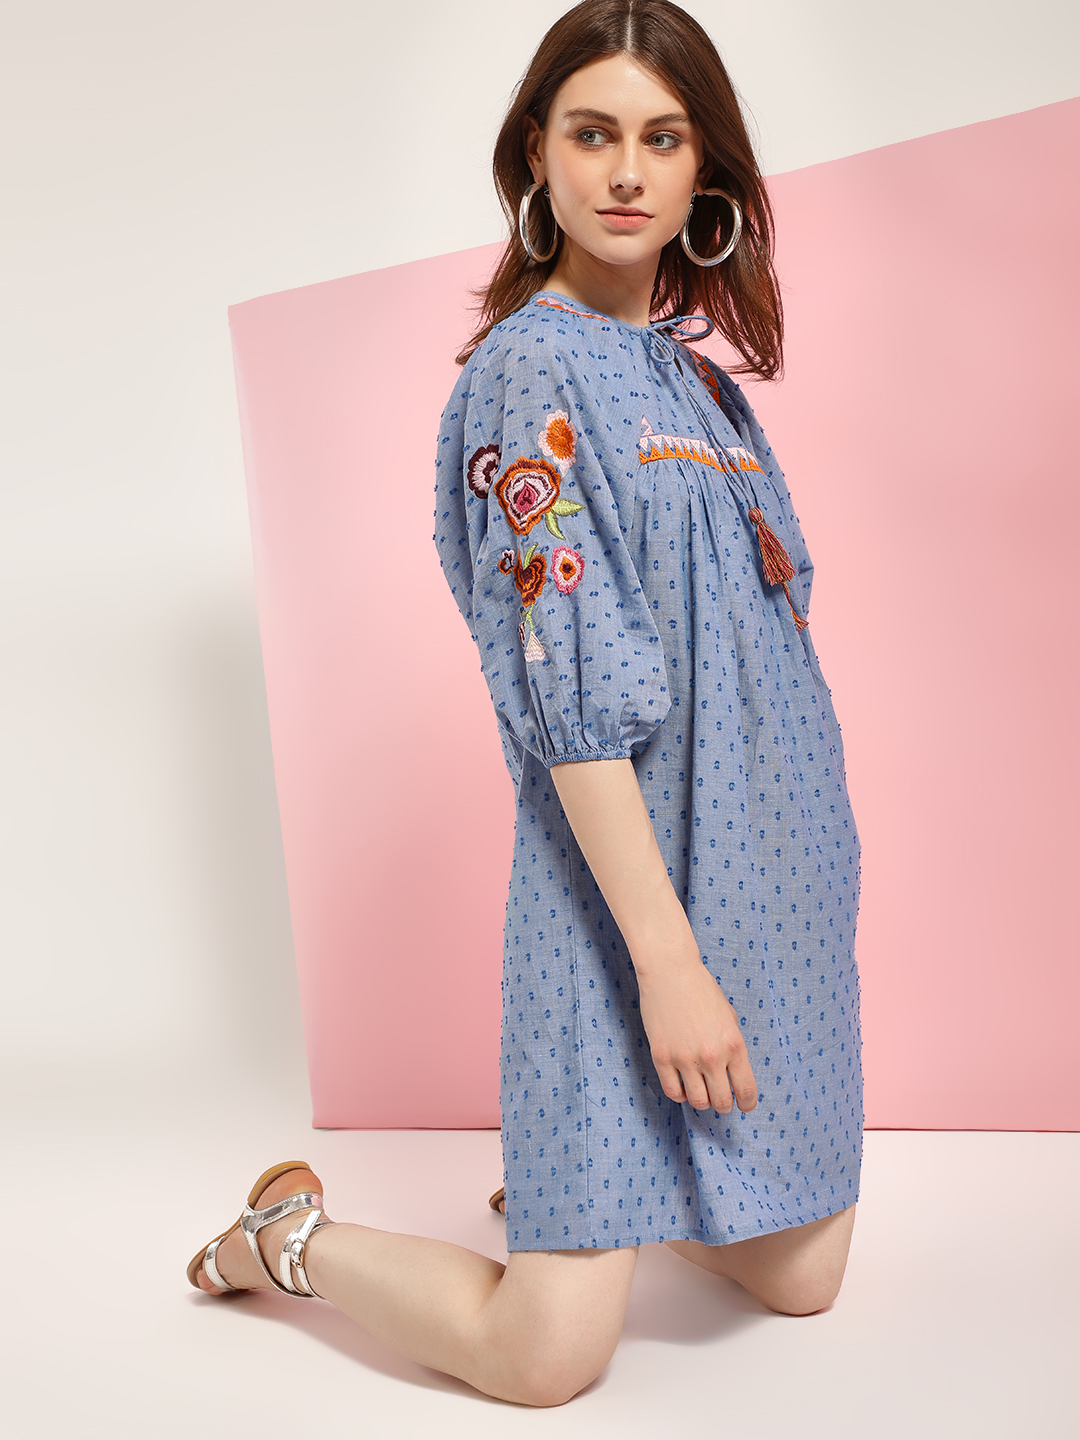 Rena Love Blue Dobby Floral Embroidered Shift Dress 1